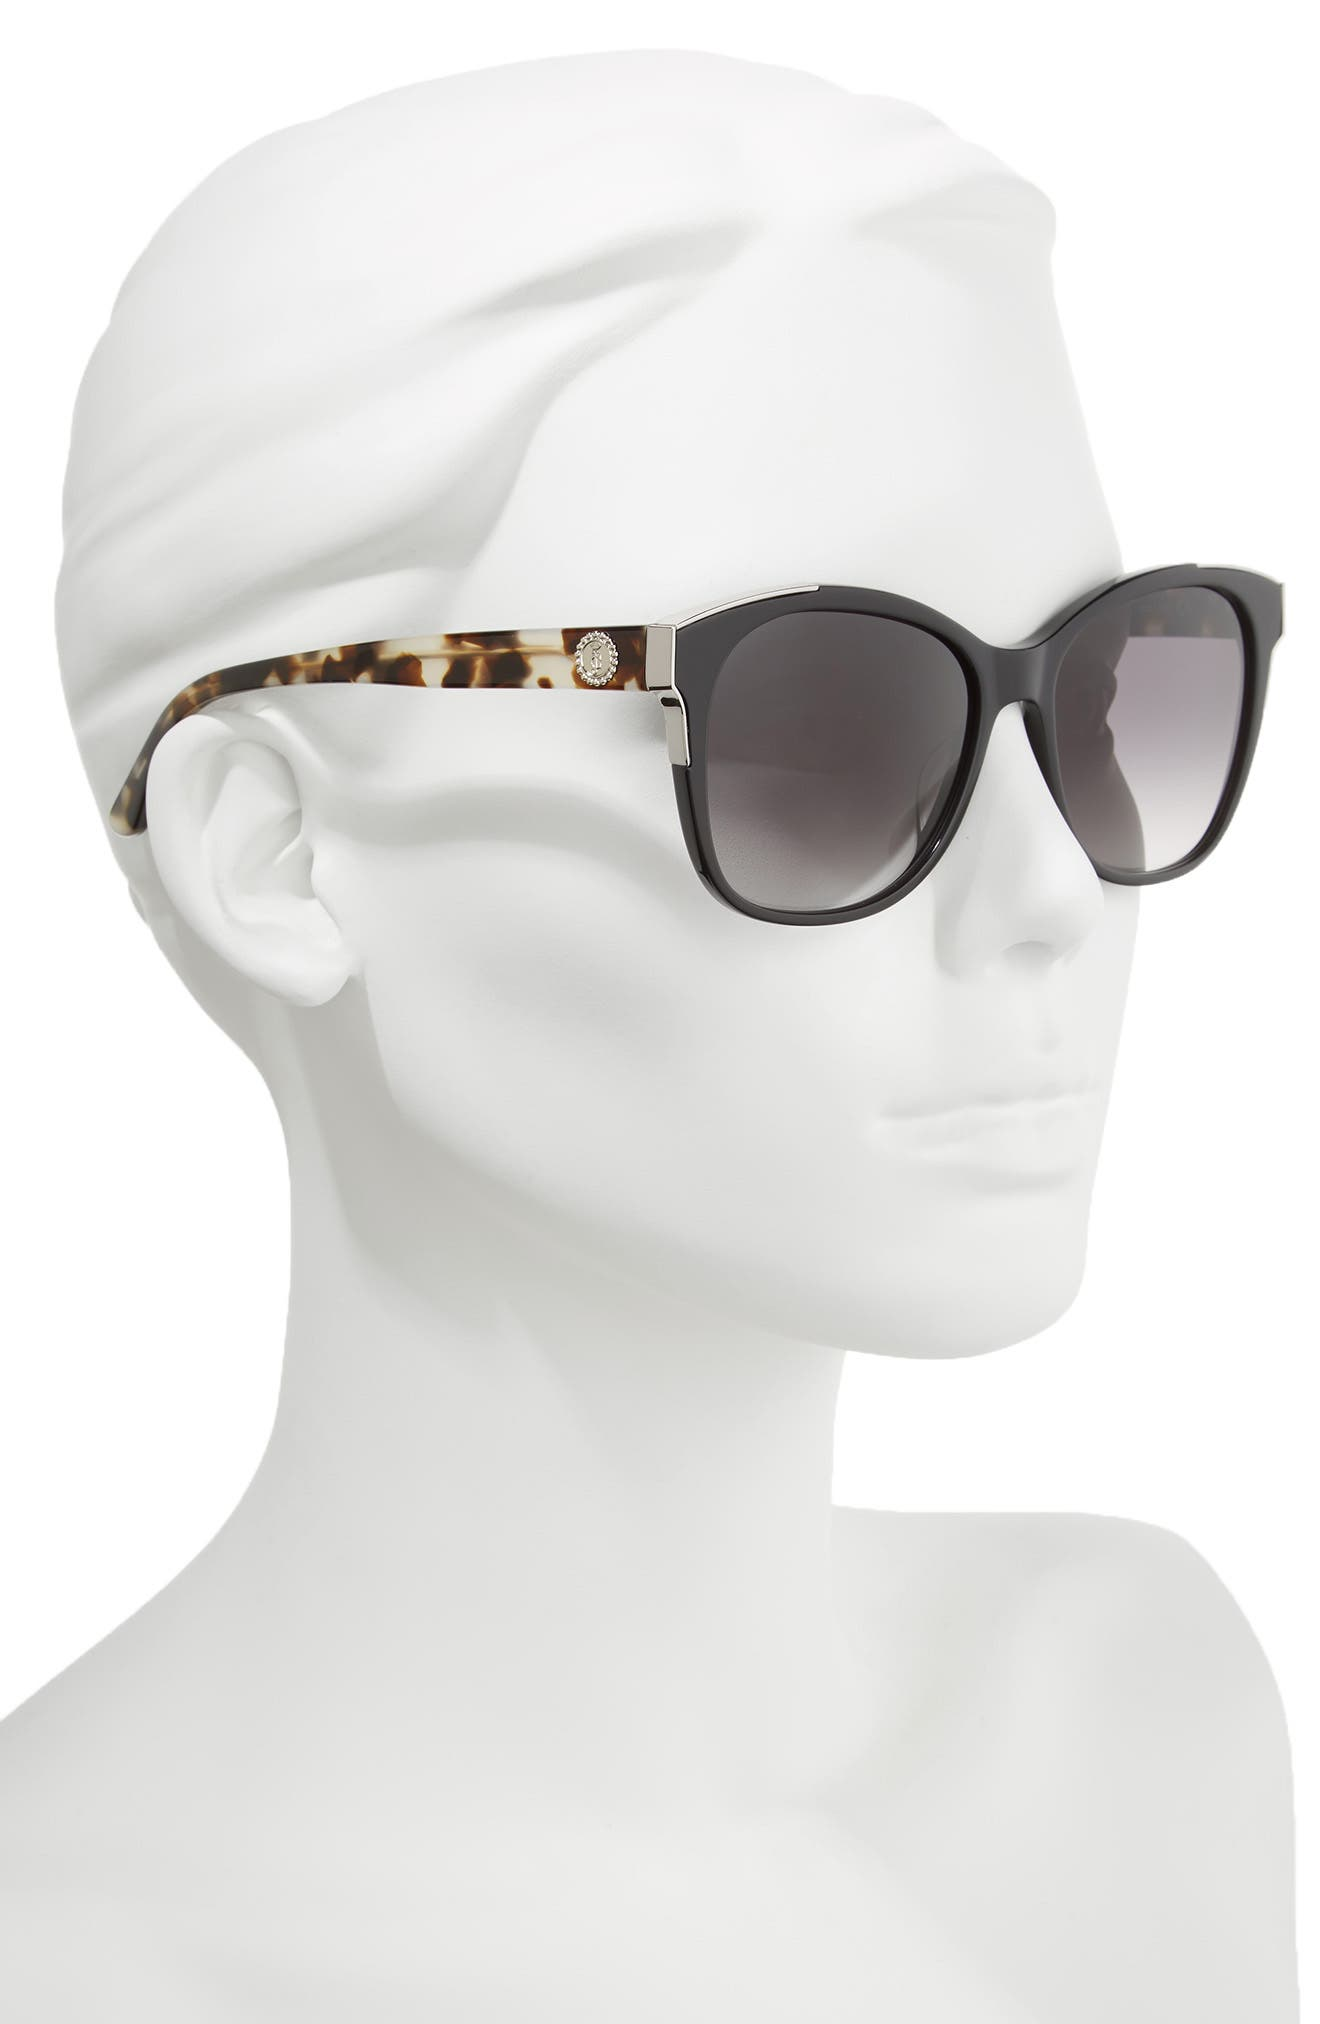 Black Label 56mm Cat Eye Sunglasses,                             Alternate thumbnail 2, color,                             BLACK